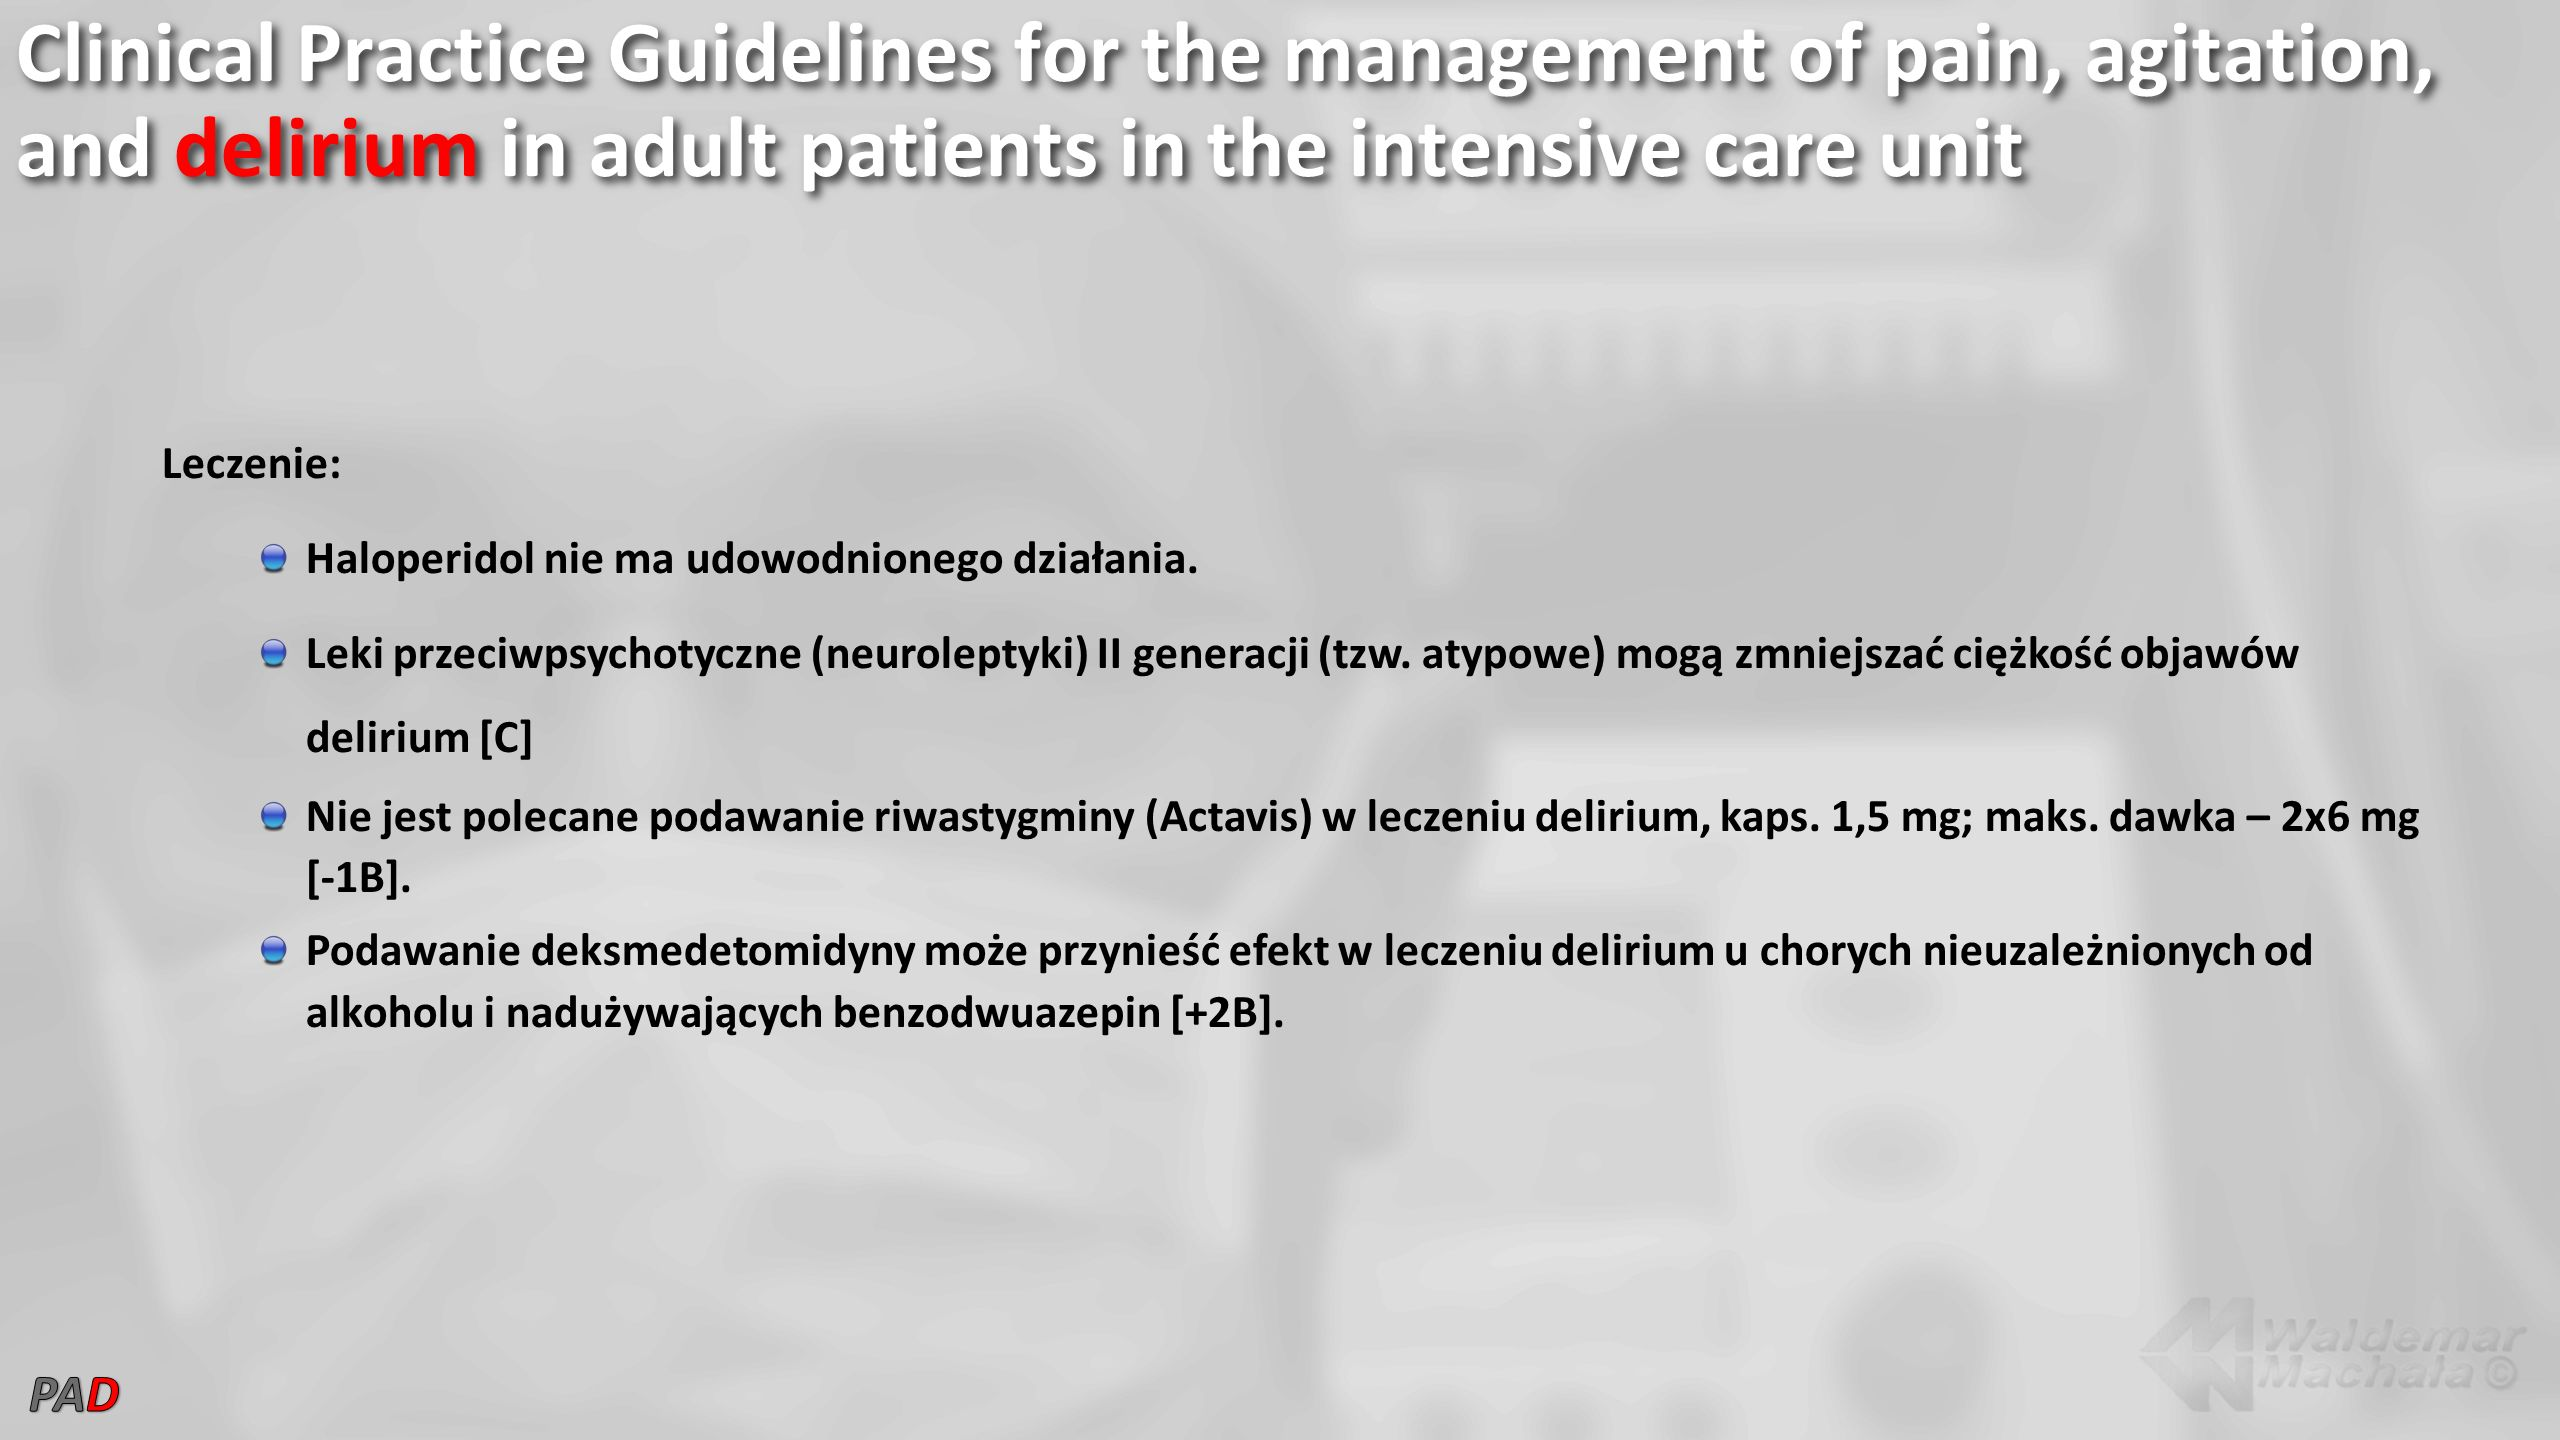 Clinical Practice Guidelines for the management of pain, agitation, and delirium in adult patients in the intensive care unit Leczenie: Haloperidol ni